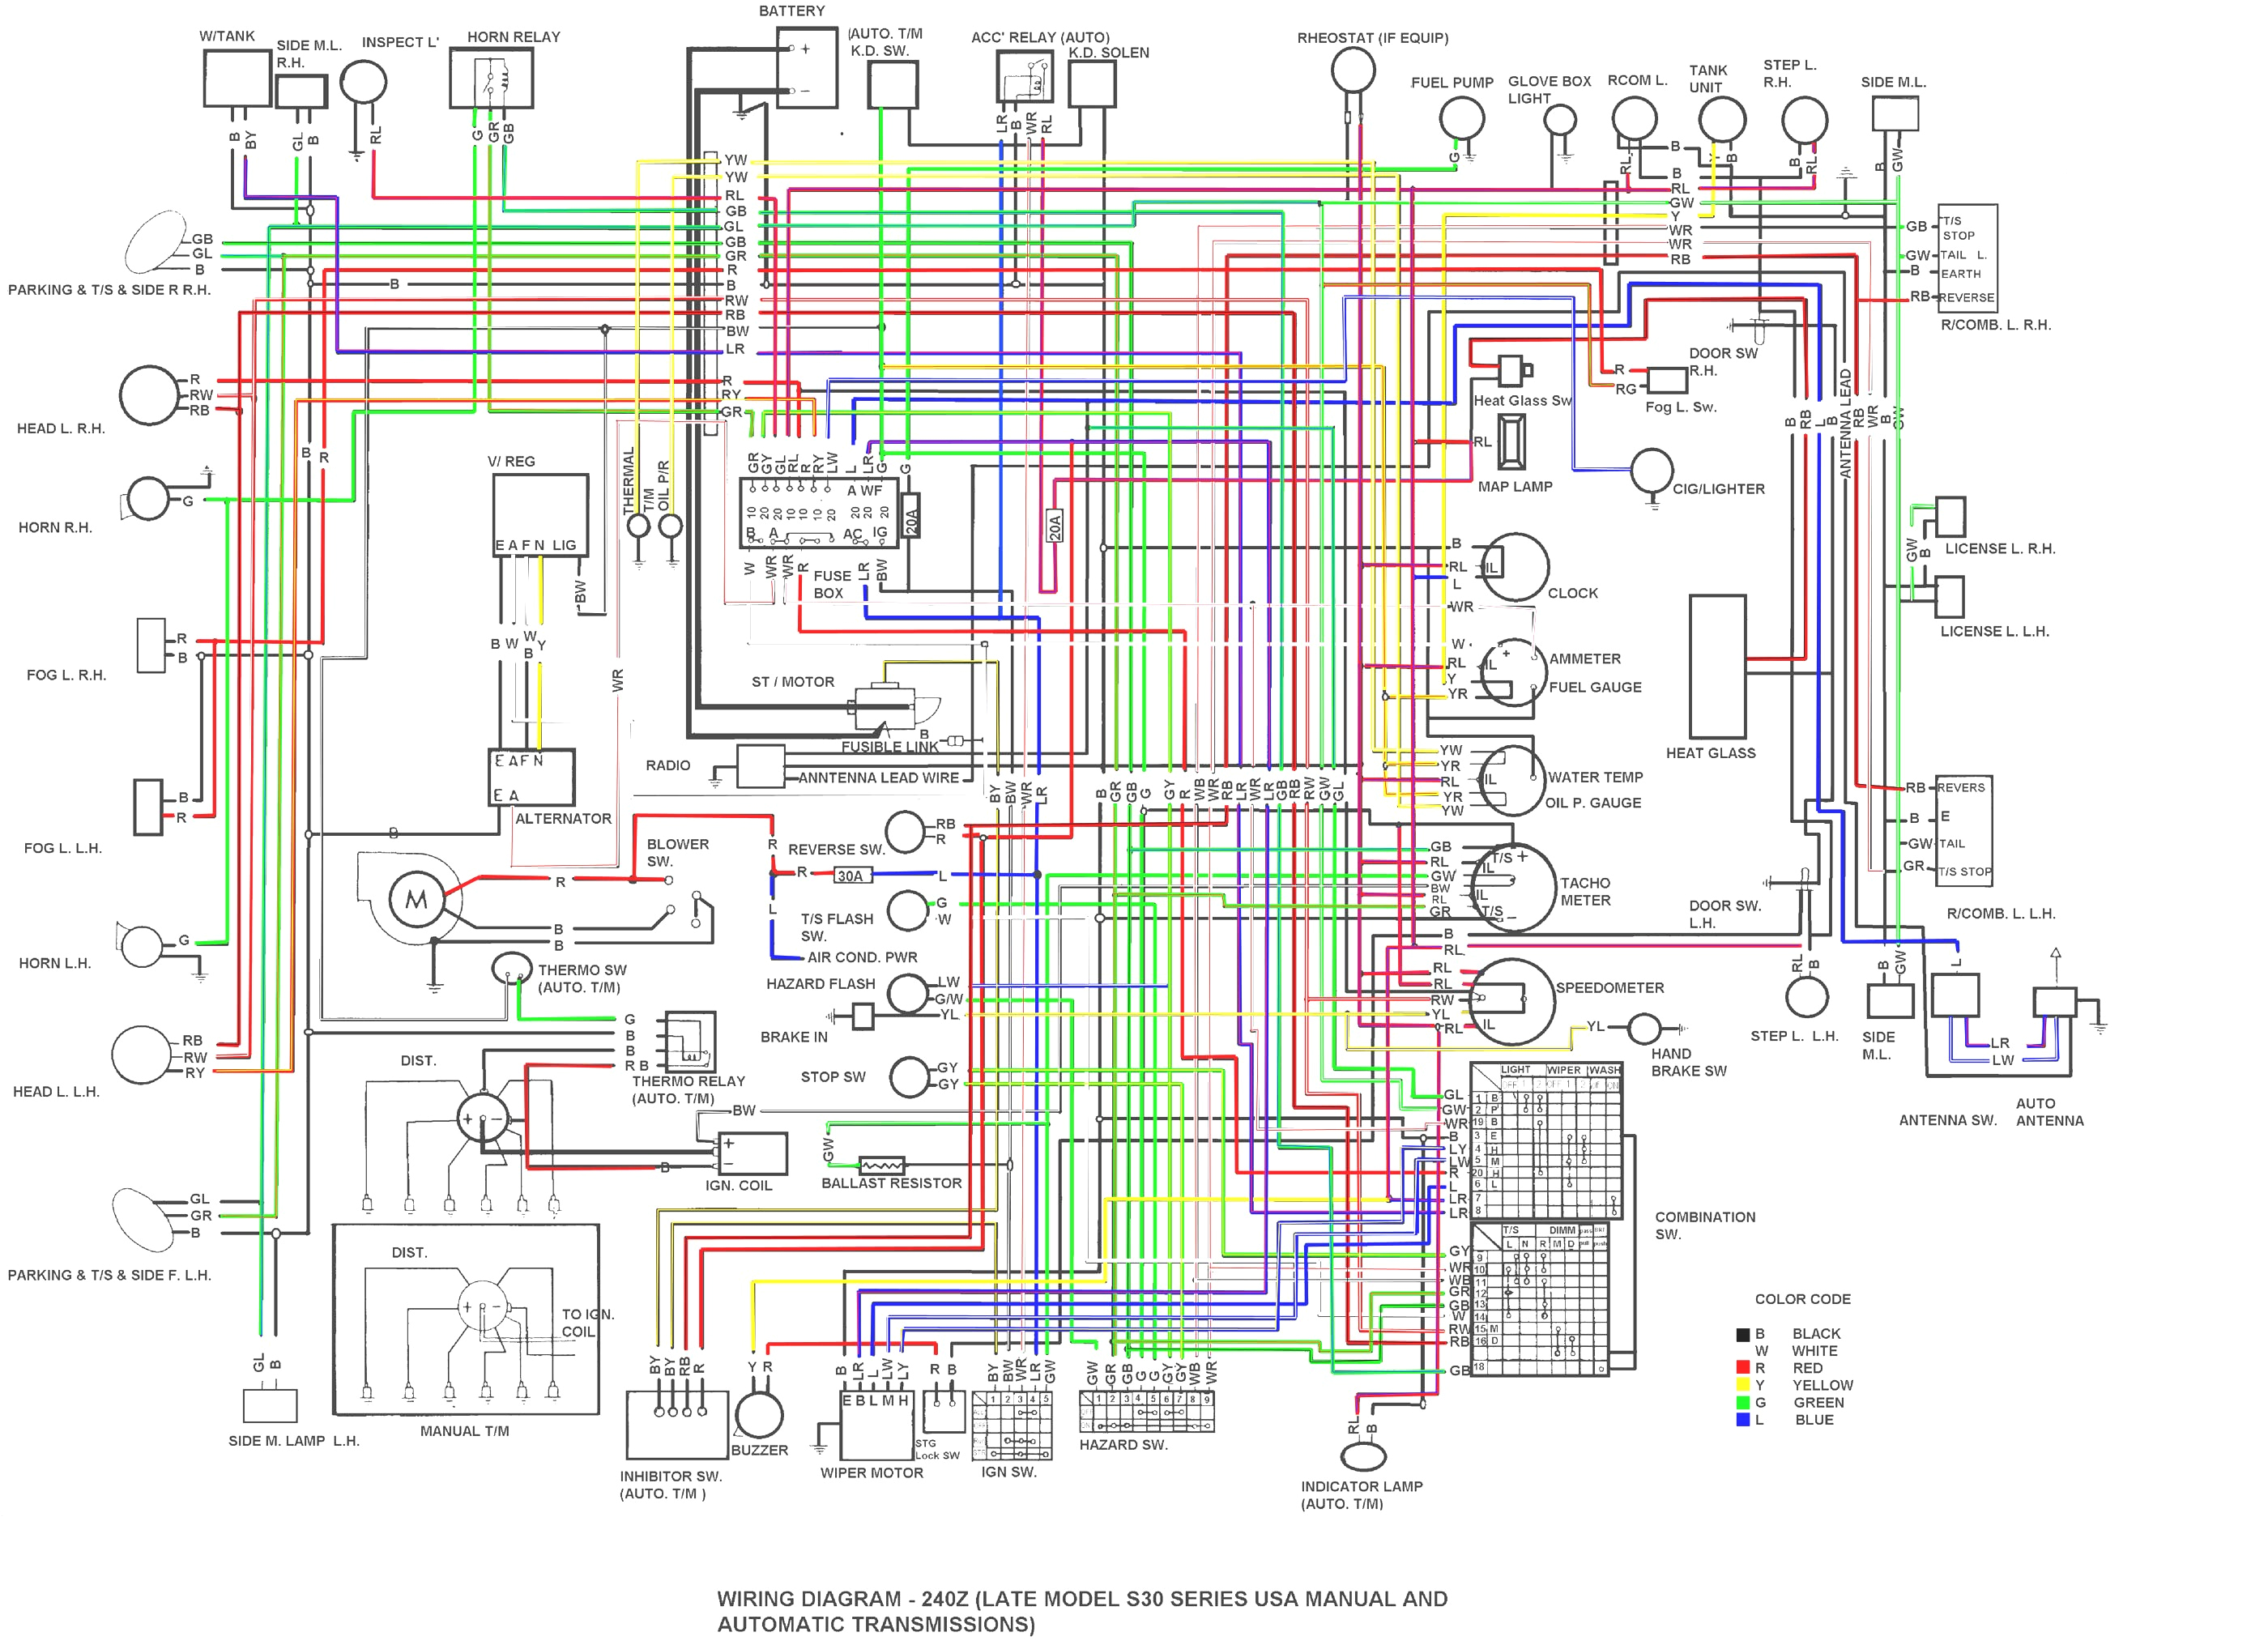 wiring harness also gm ls1 wiring harness furthermore painlesspainless ls1 wiring harness diagram blog wiring diagram